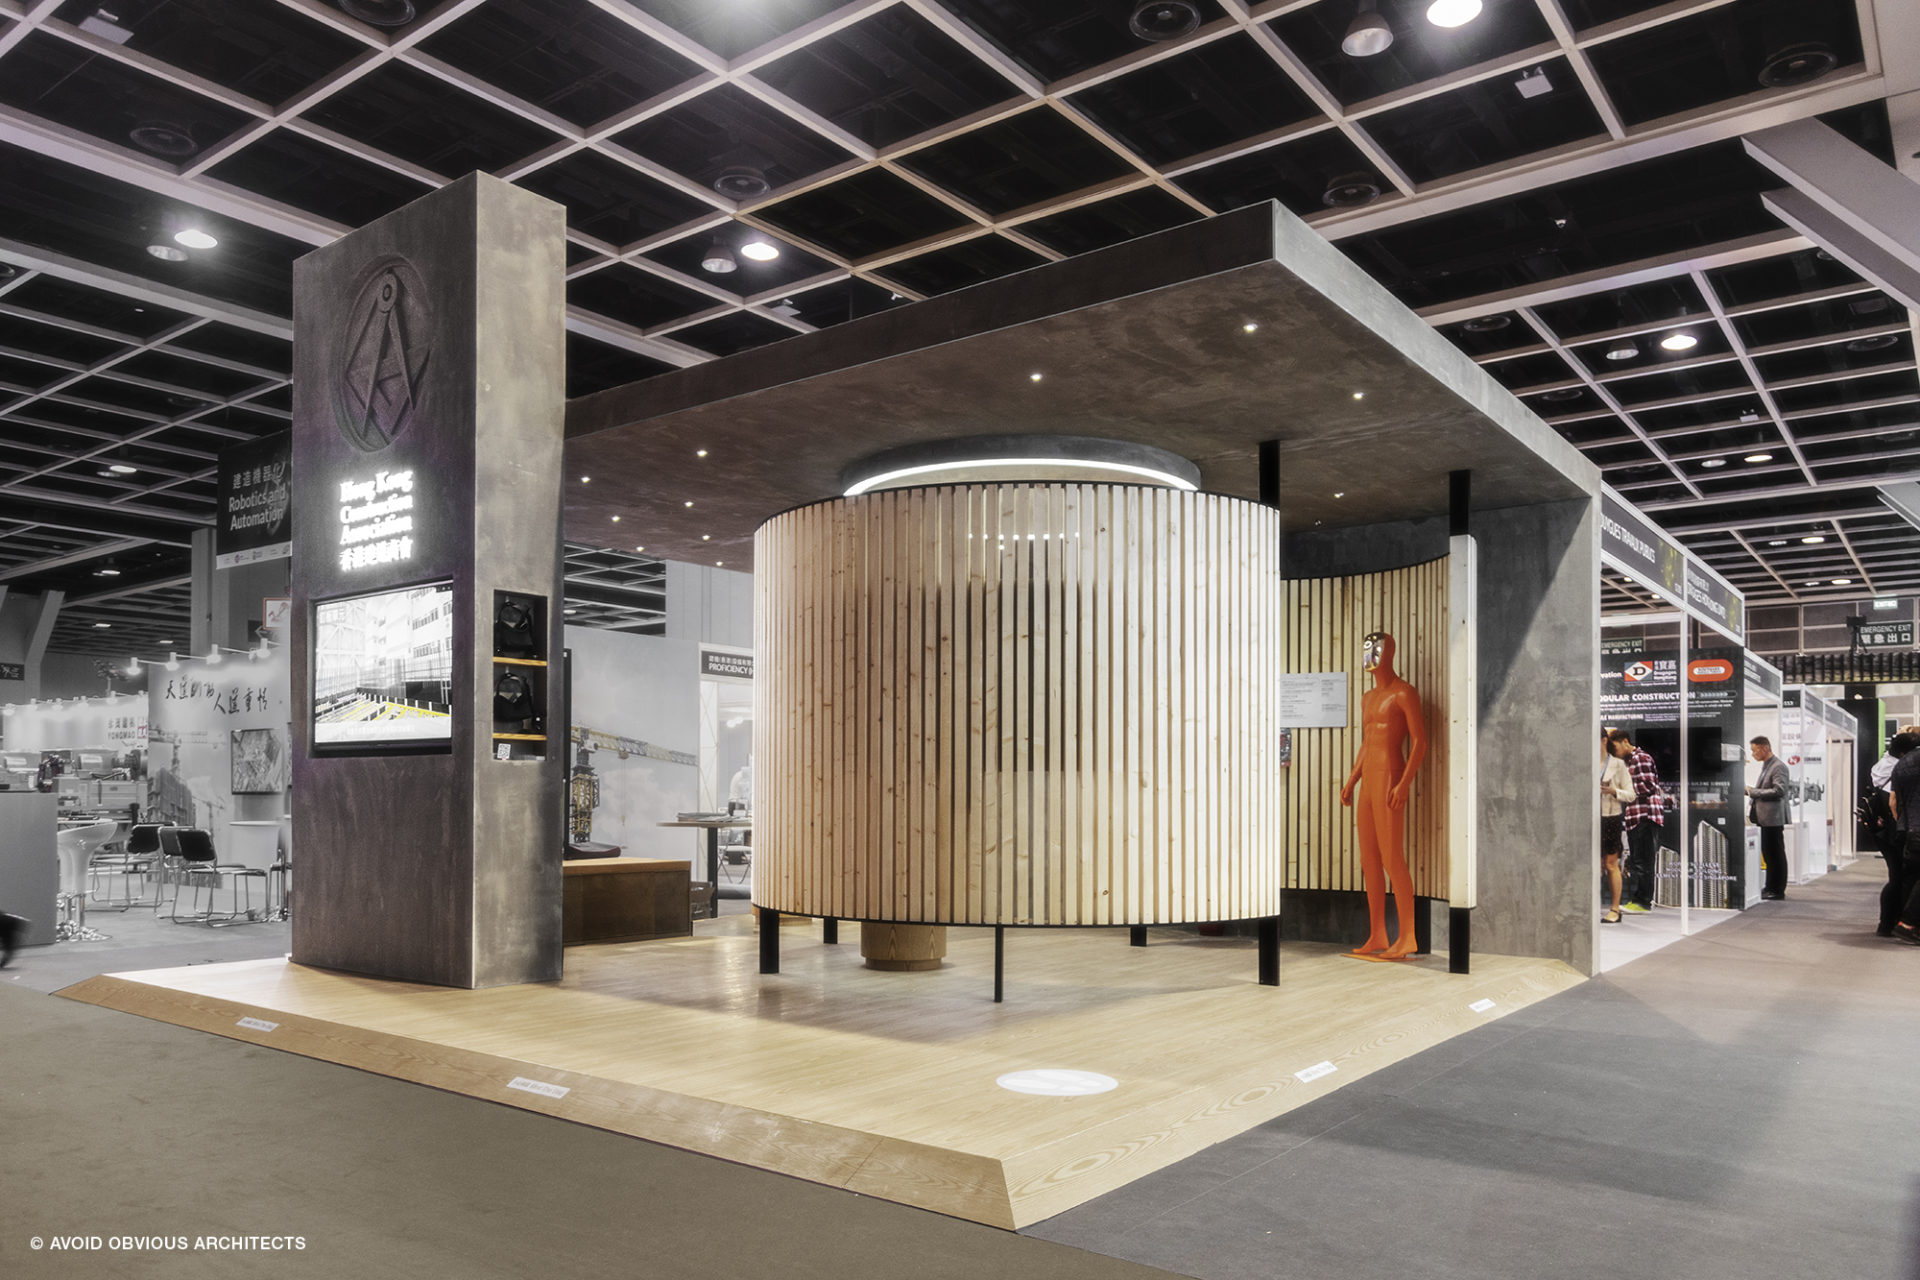 HKAC, avoid obvious, architects, aoa,, vicky chan, designer, wood, mobile, booth, exhibition, construction safety, hong kong, Construction association, Convention, wood fin, concrete, 100 years old